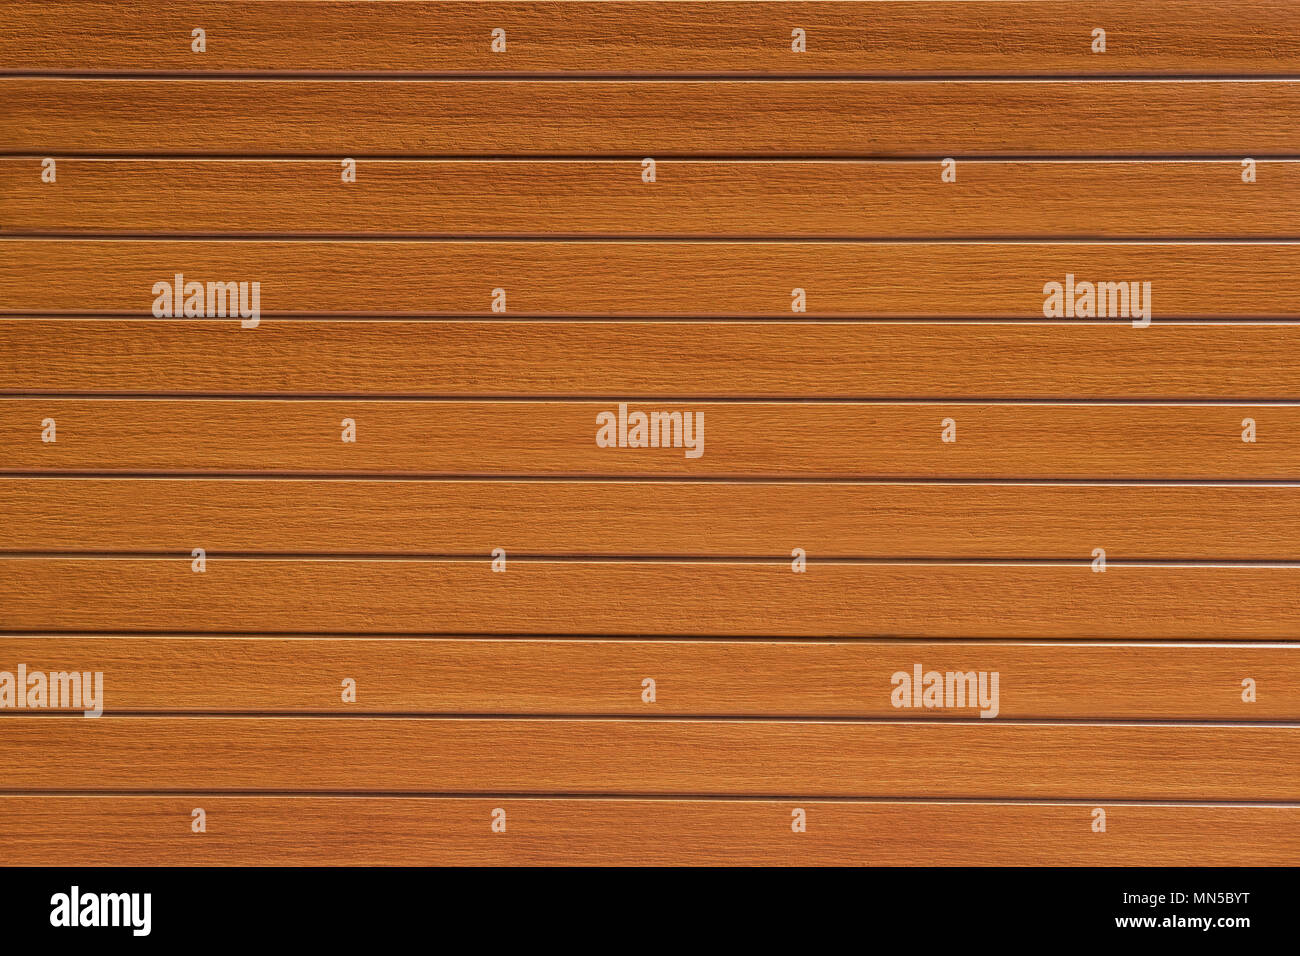 Brown wooden background. Closeup wooden table texture. Useful as for background. - Stock Image